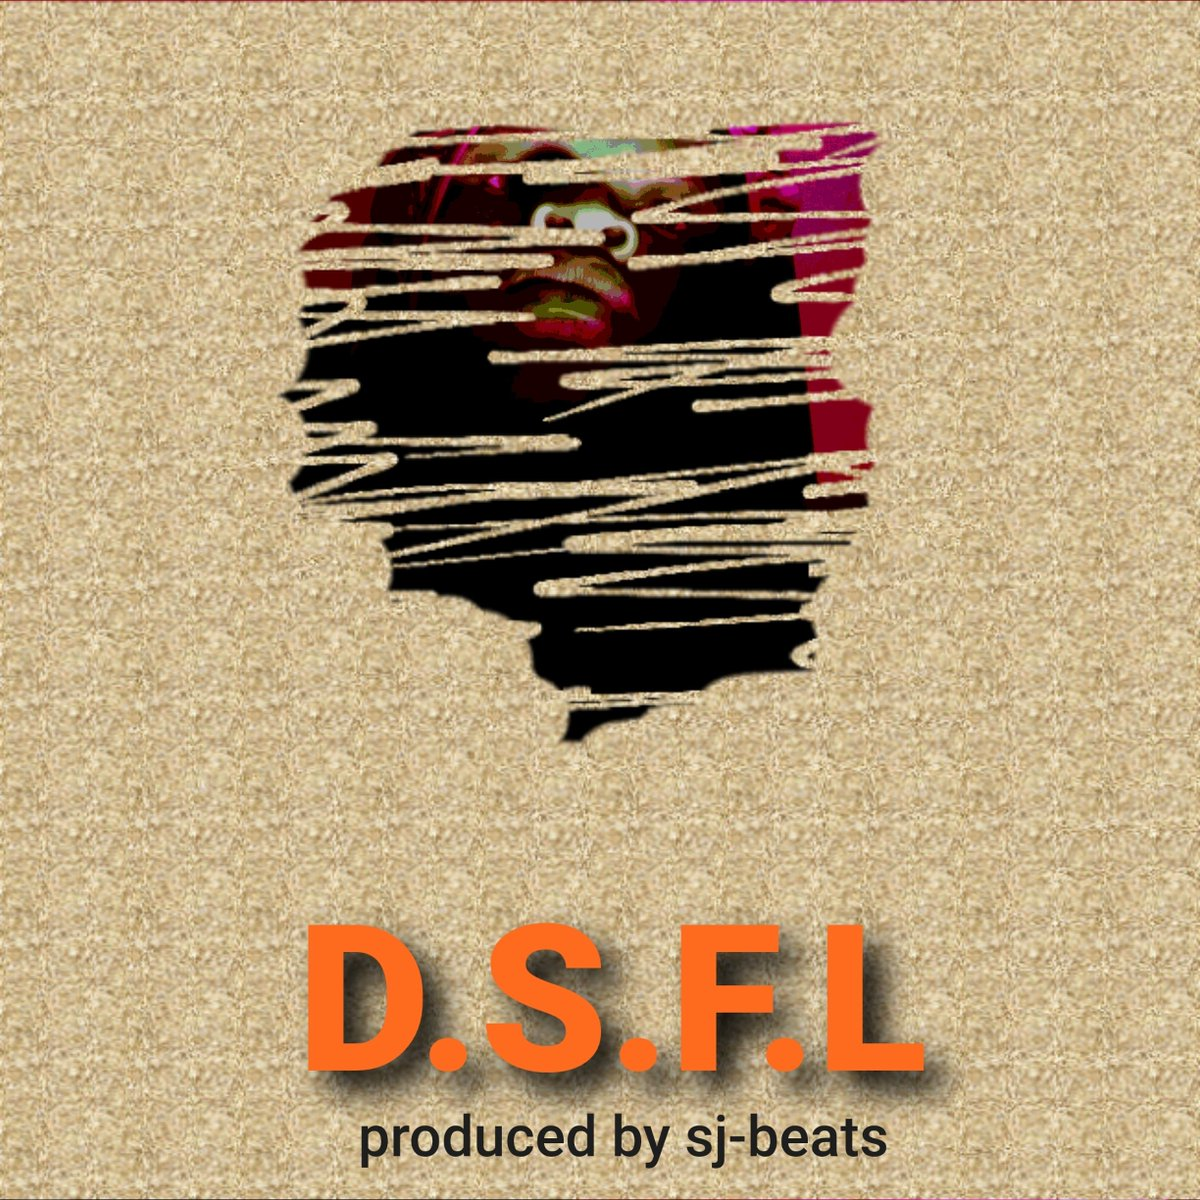 #DSFL #DONTSETTLEFORLESS  Dropping Soon..... July 30th#MTVAwards #ChannelO #TrendingNow #trendingtopic #UkDrill pic.twitter.com/dNThIp8rWC